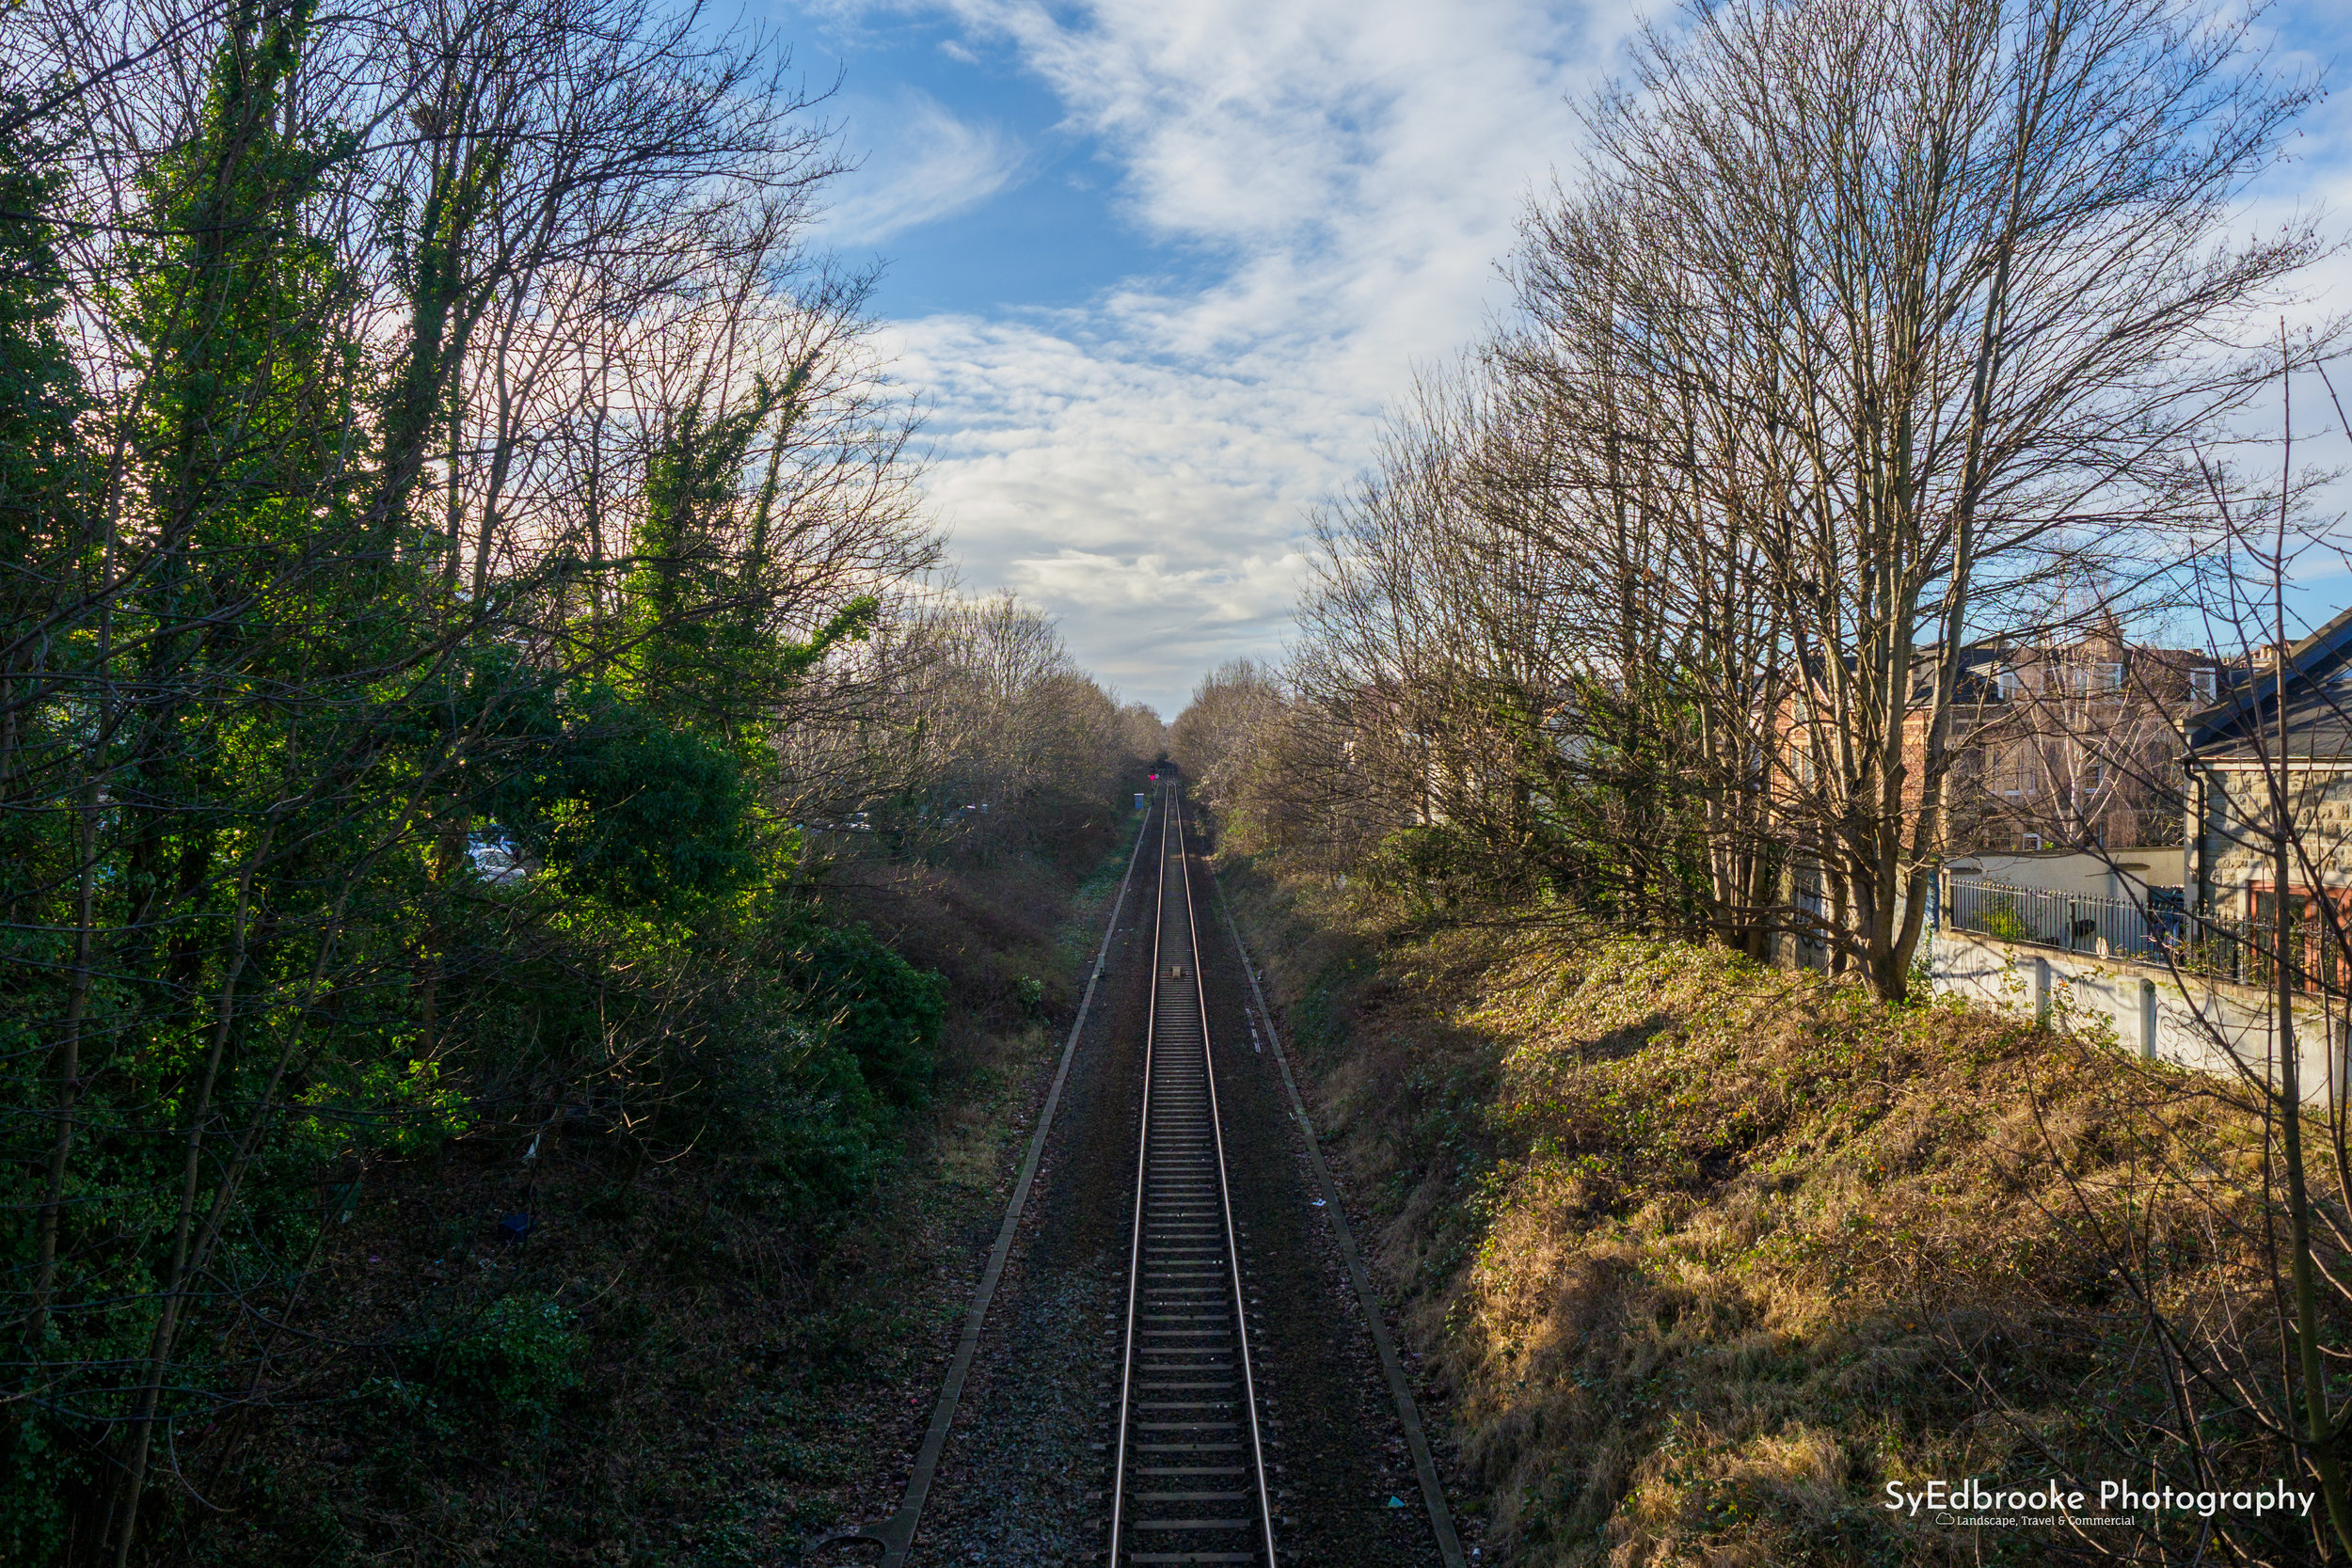 The local railway in Redland. 24mm, ISO 200, f 2.8, 1/2000